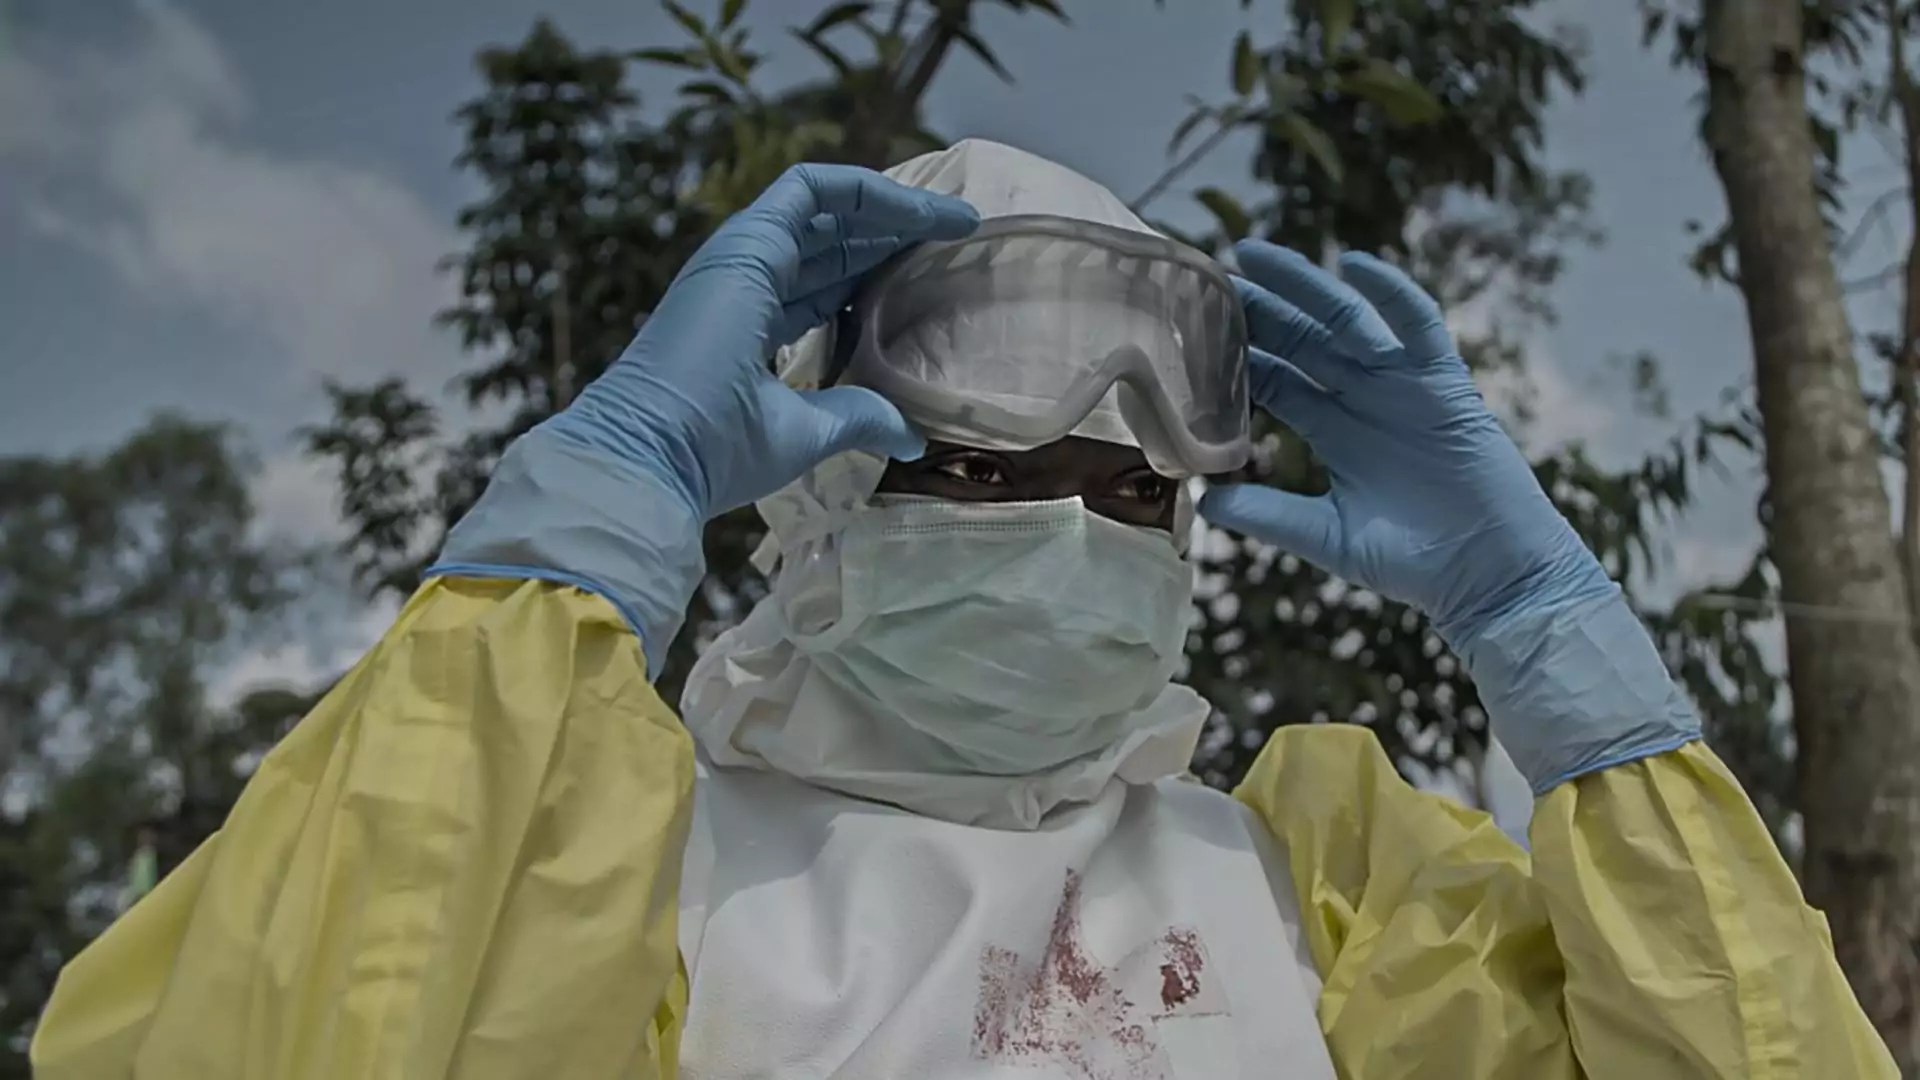 A medical worker peels off their goggles and looks off-screen.